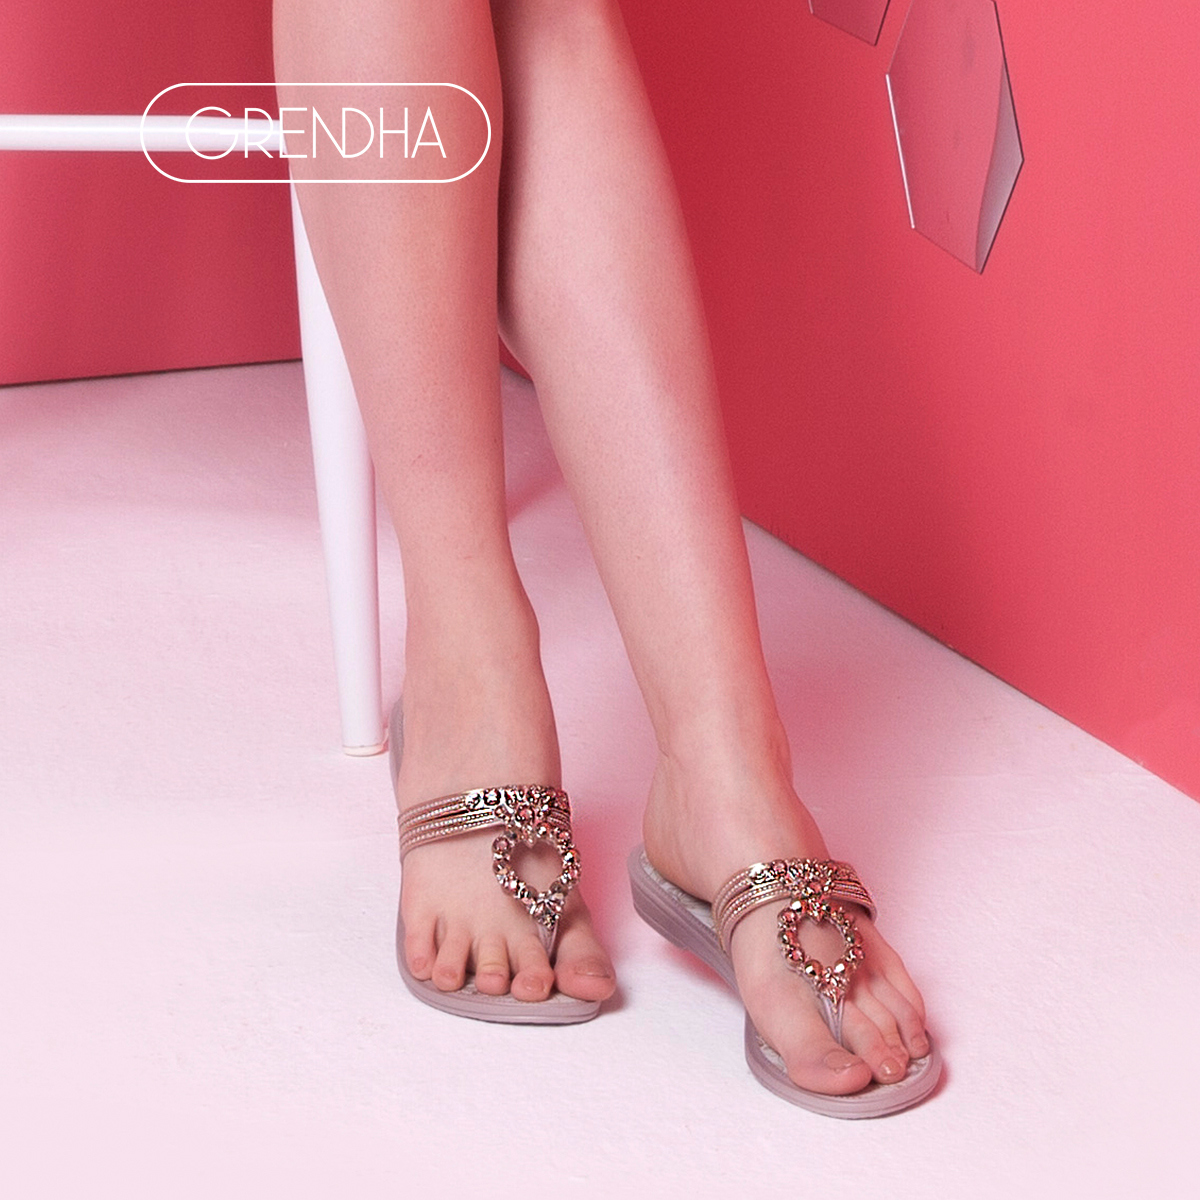 789571eb0 ... GRENDHA2018 spring and summer new flower diamond series summer flat  with light luxury imported thong sandals